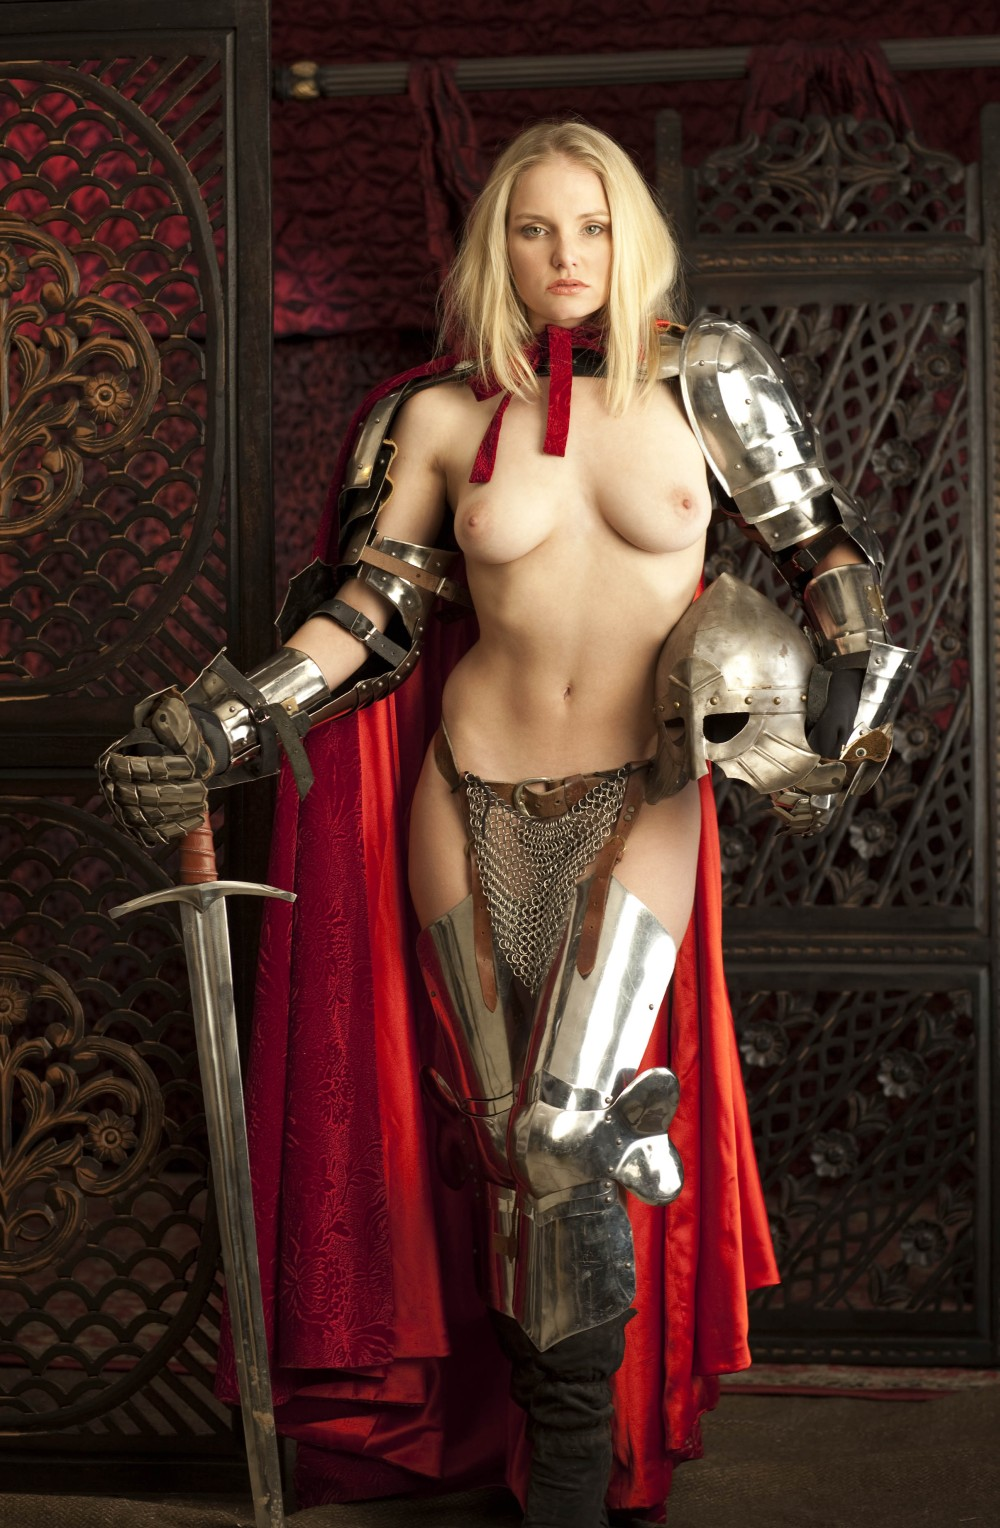 Nude girls in armor exposed picture